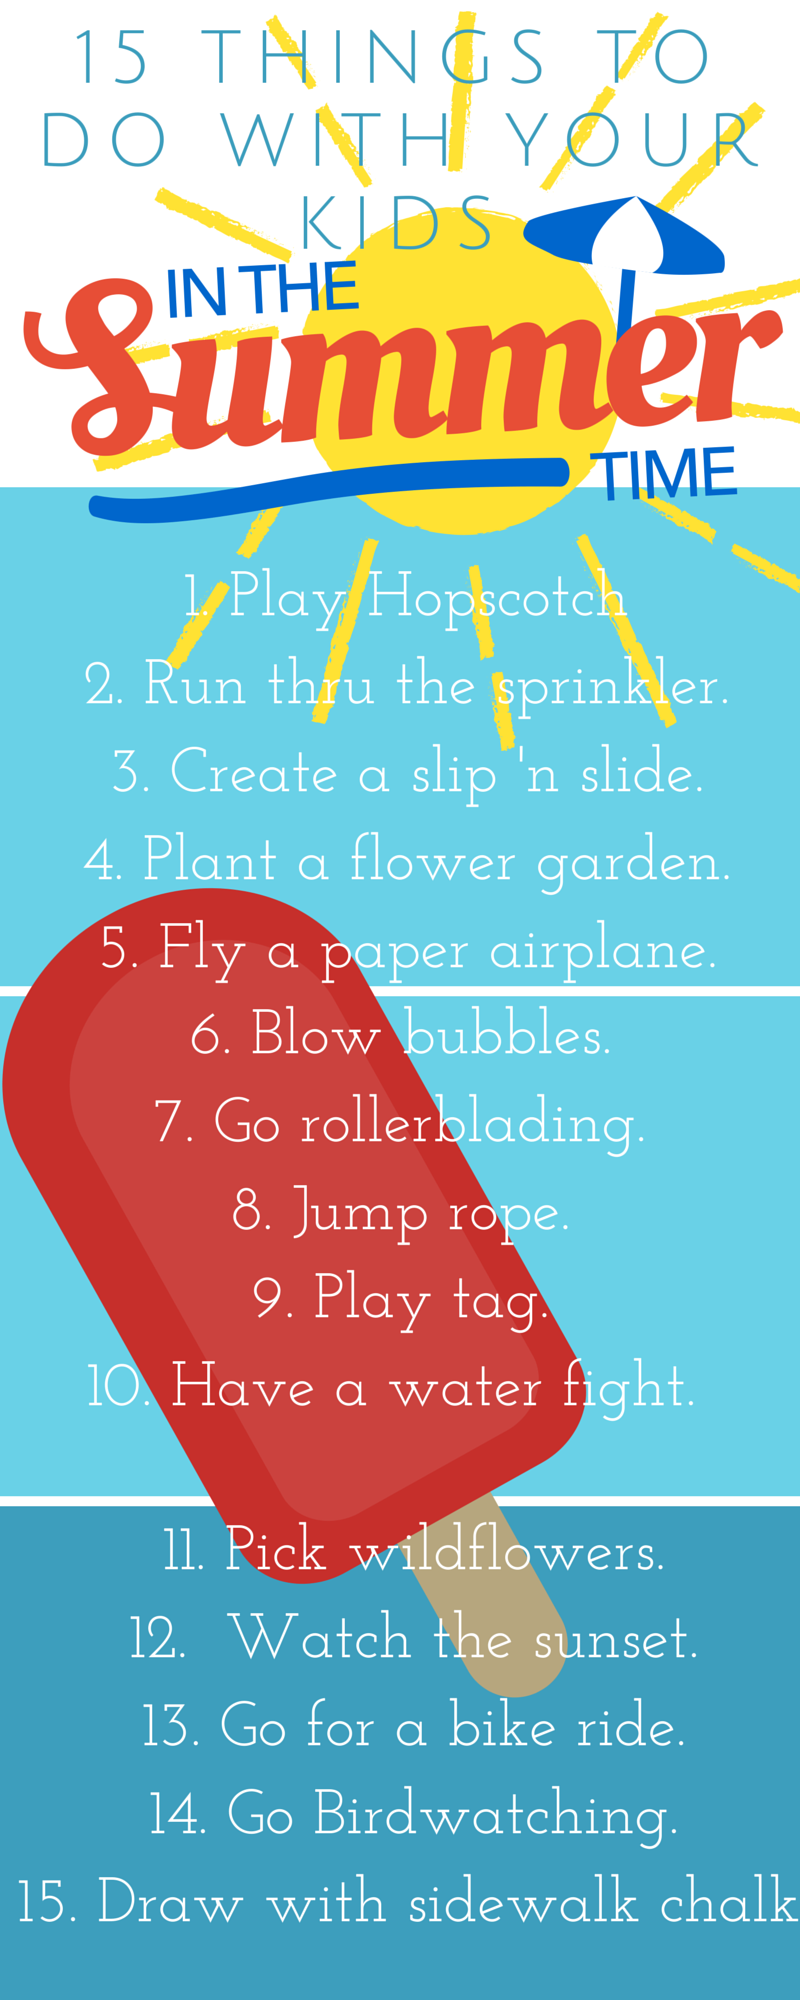 101 Summer fun ideas (1)